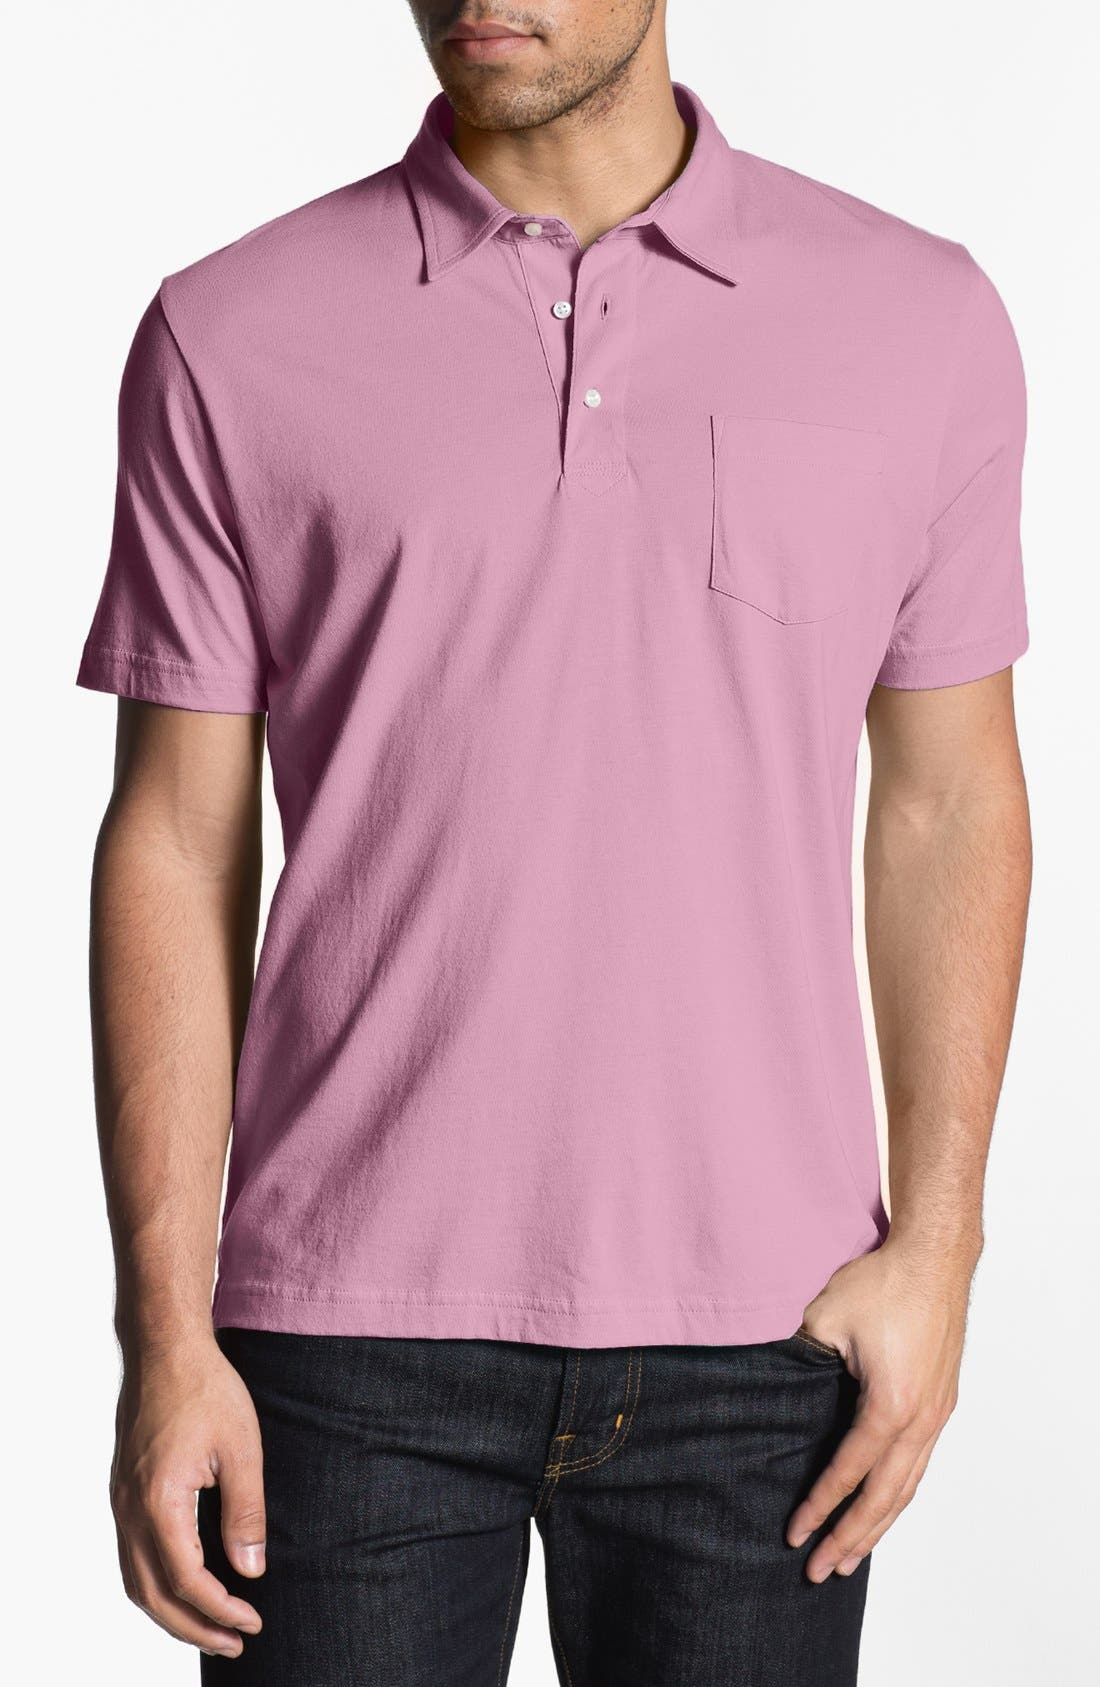 Alternate Image 1 Selected - Peter Millar Taylor Fit Vintage Wash Jersey Polo